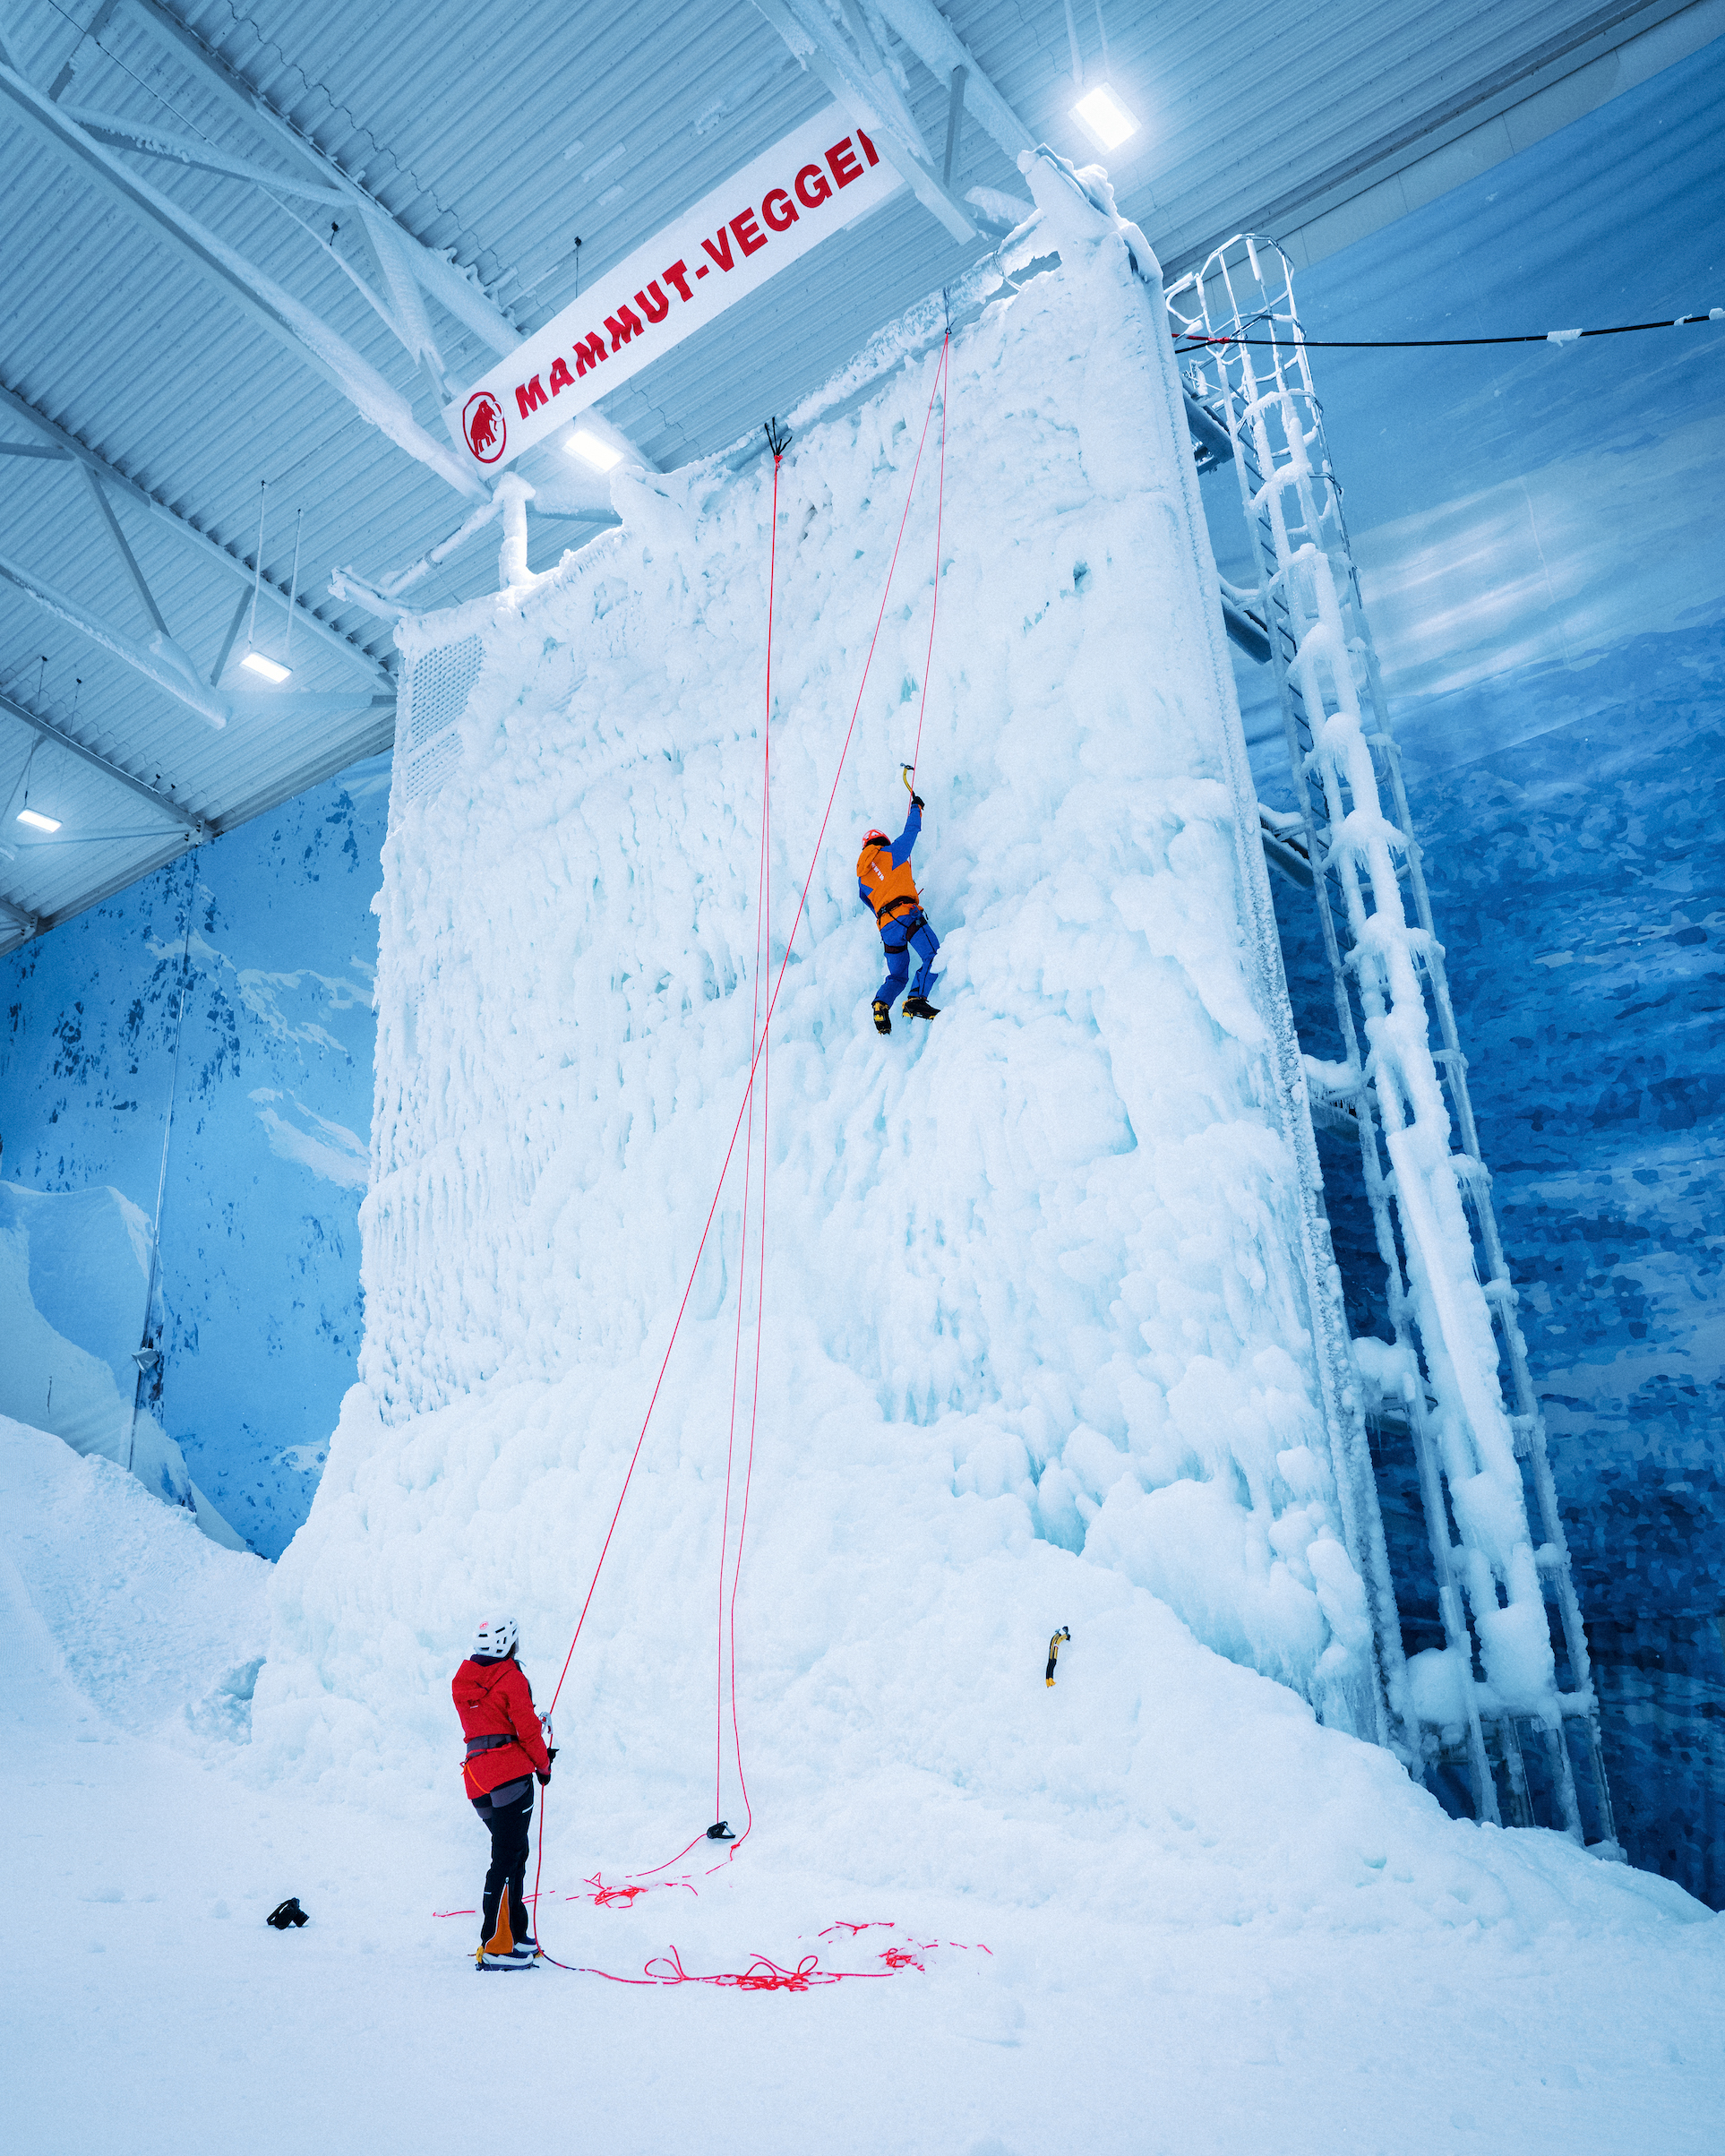 The Mammut wall